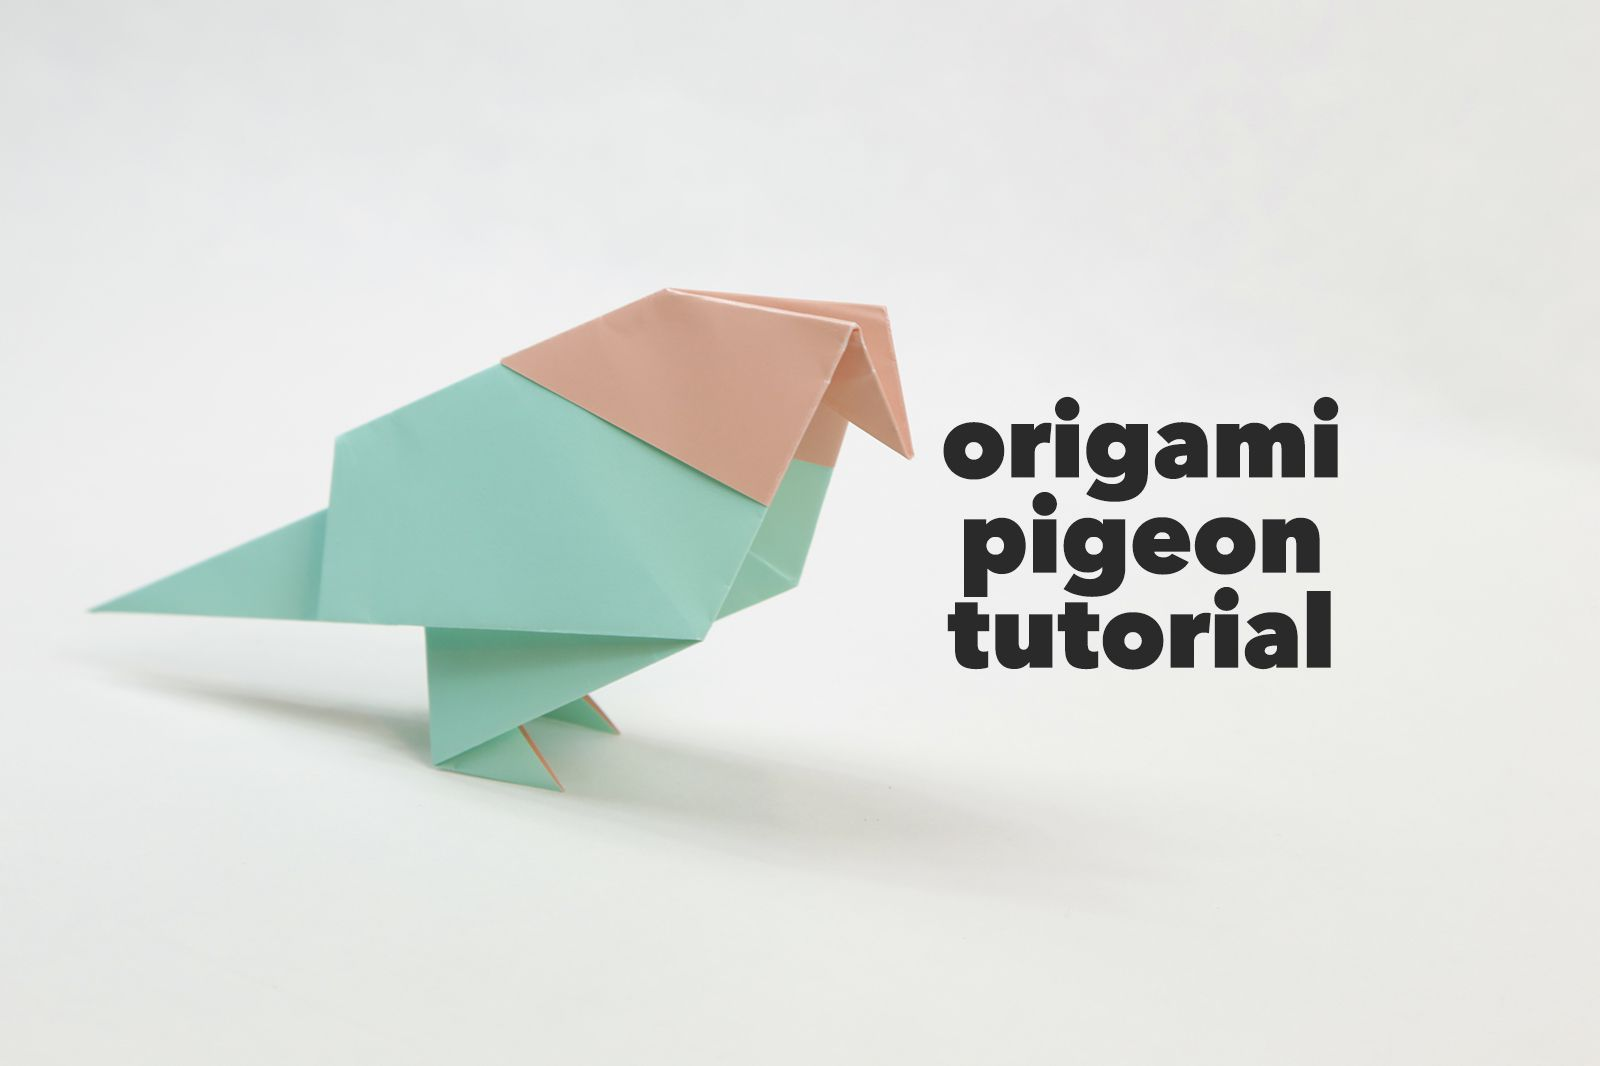 traditional origami pigeon tutorial